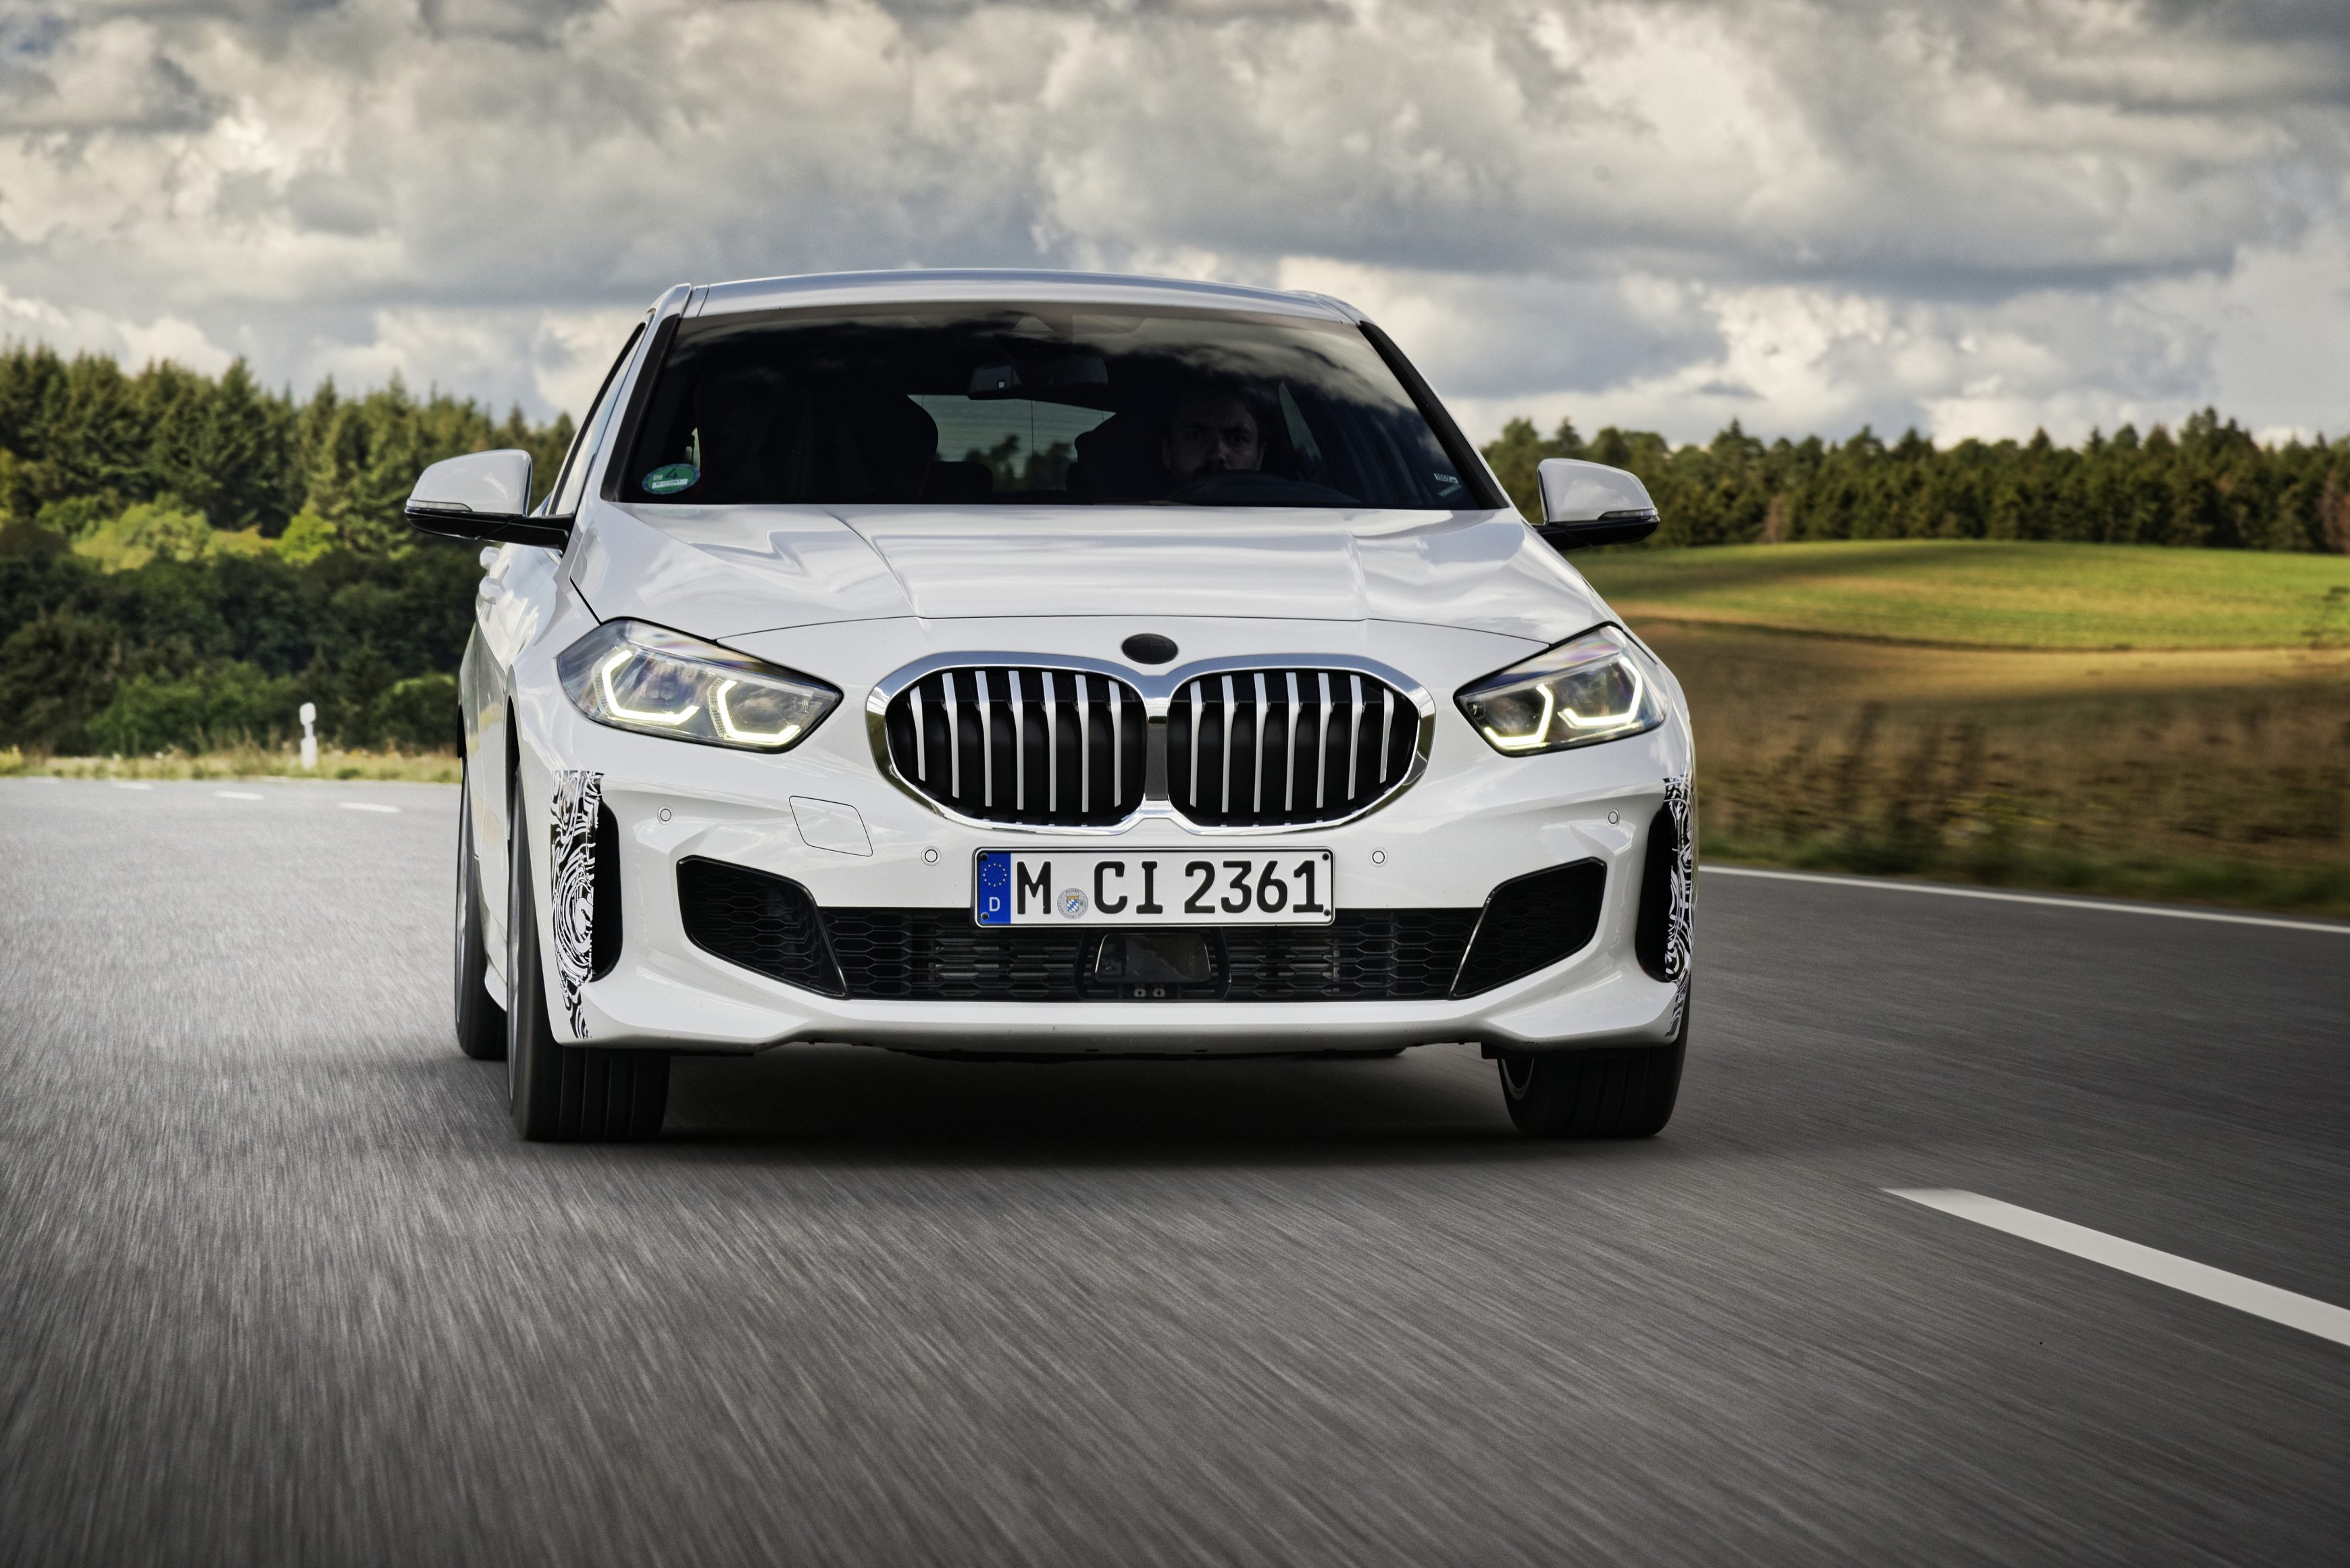 Best-selling cars in the UK - BMW 1 Series